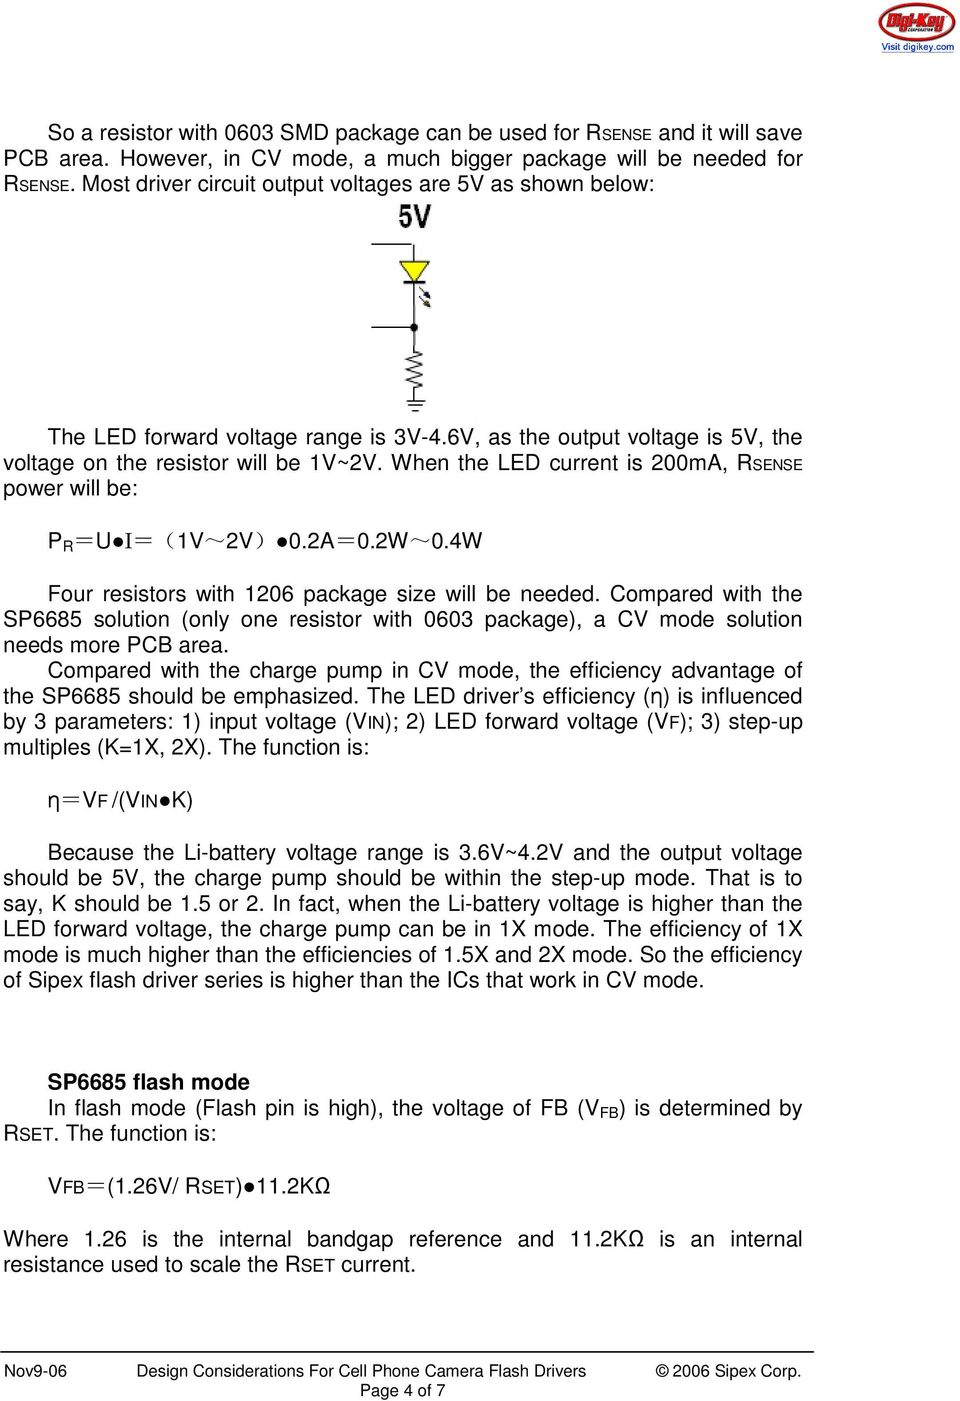 Application Note Anp17 Pdf Two Led Flasher Circuit Uses Any Dc Supply From 3v To 12v Flash Rate When The Current Is 200ma Rsense Power Will Be P R U I